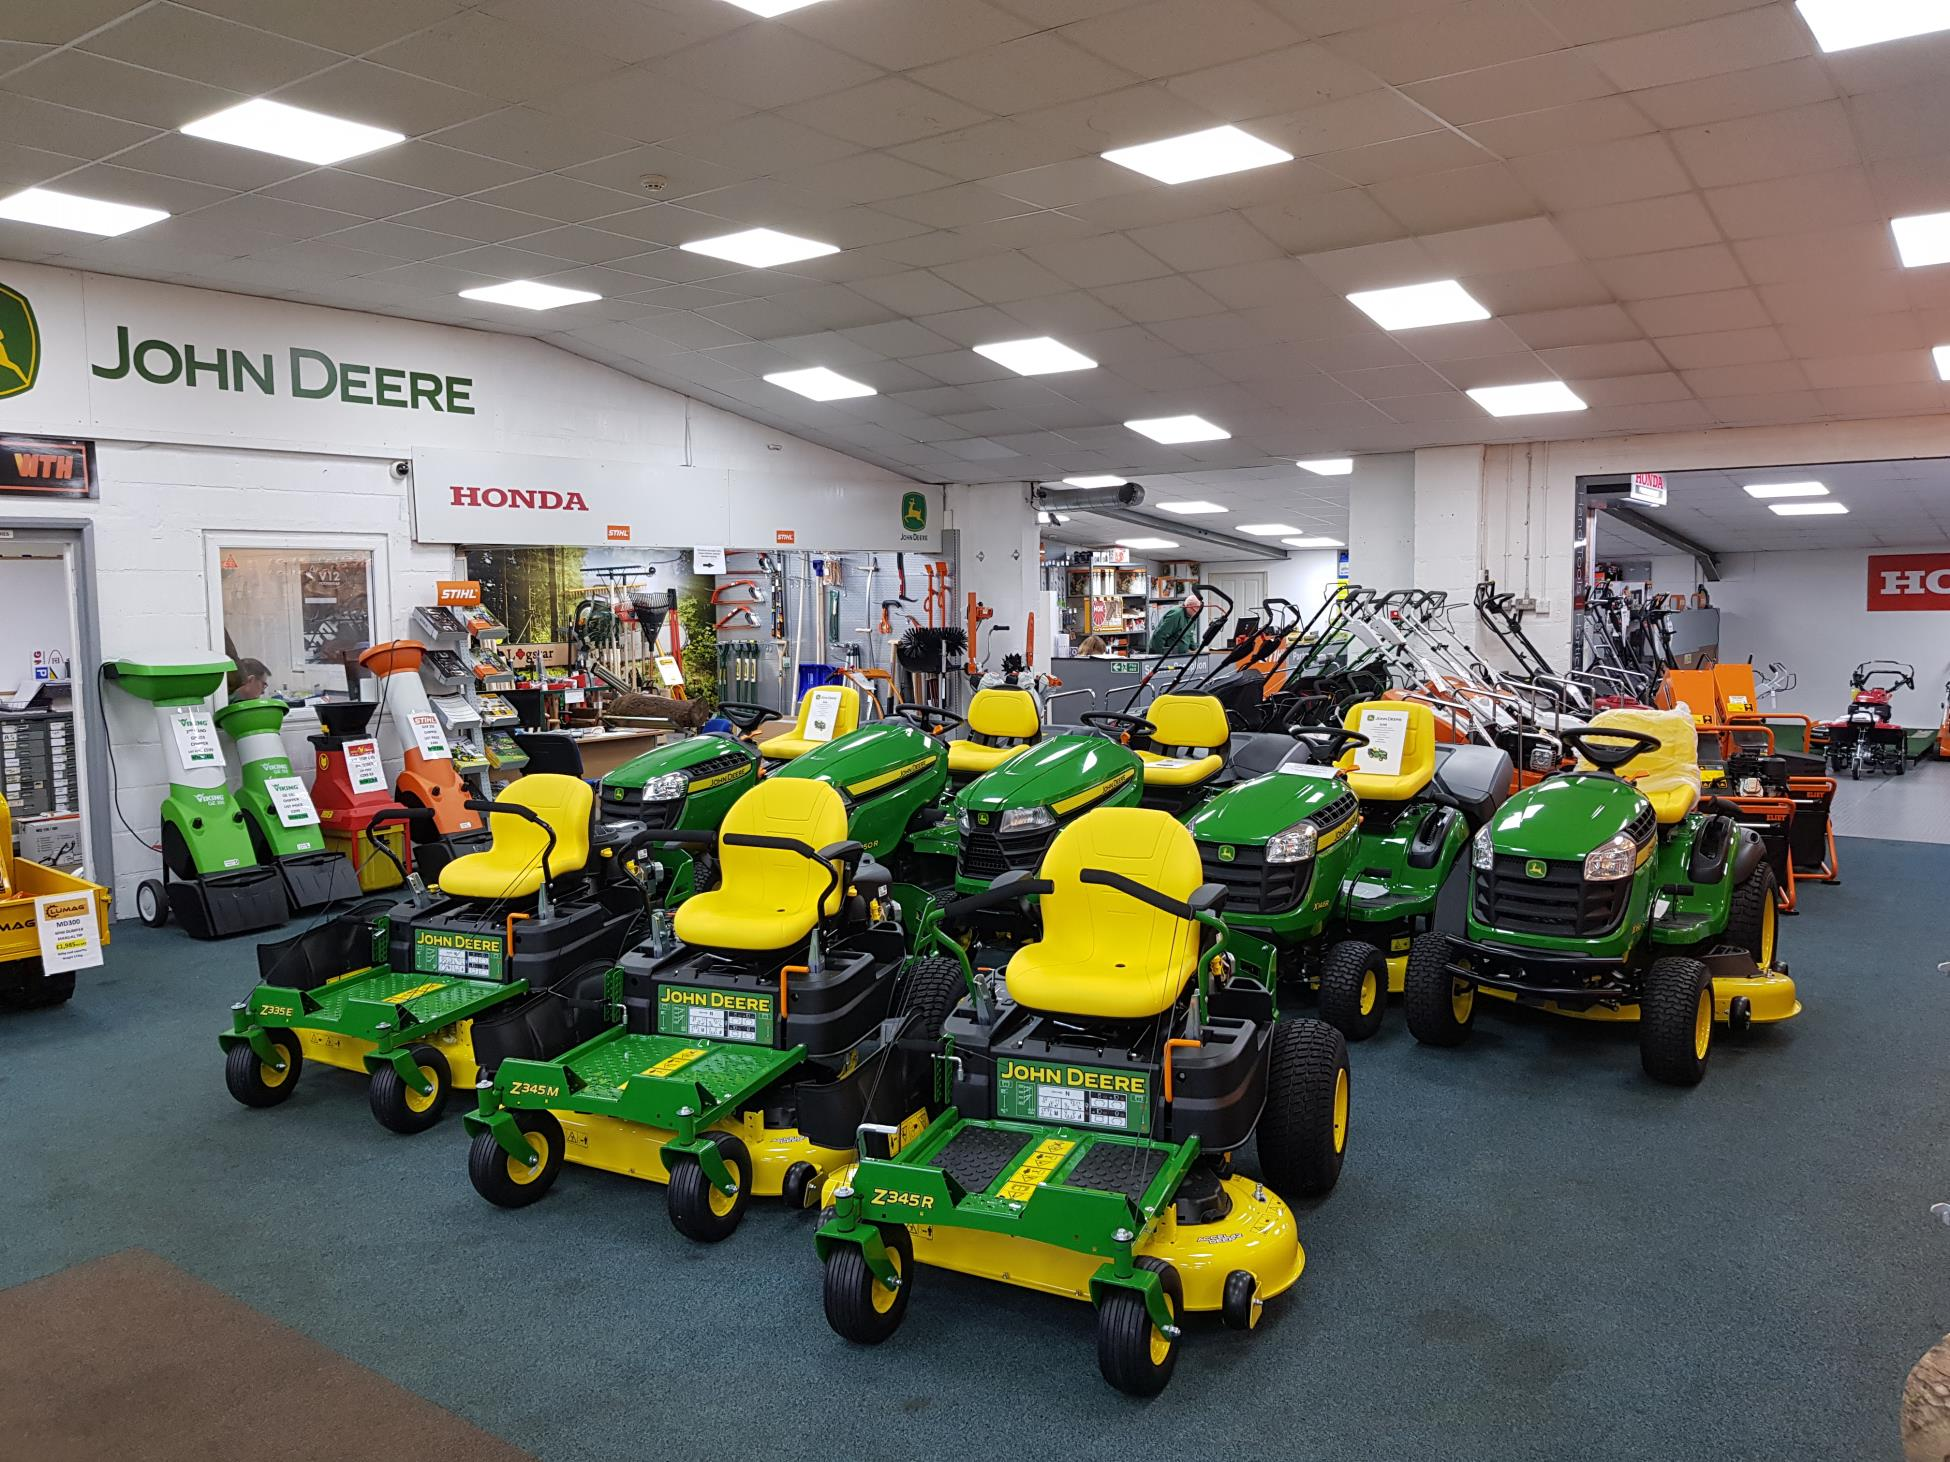 John Deere lawnmowers and lawn tractors